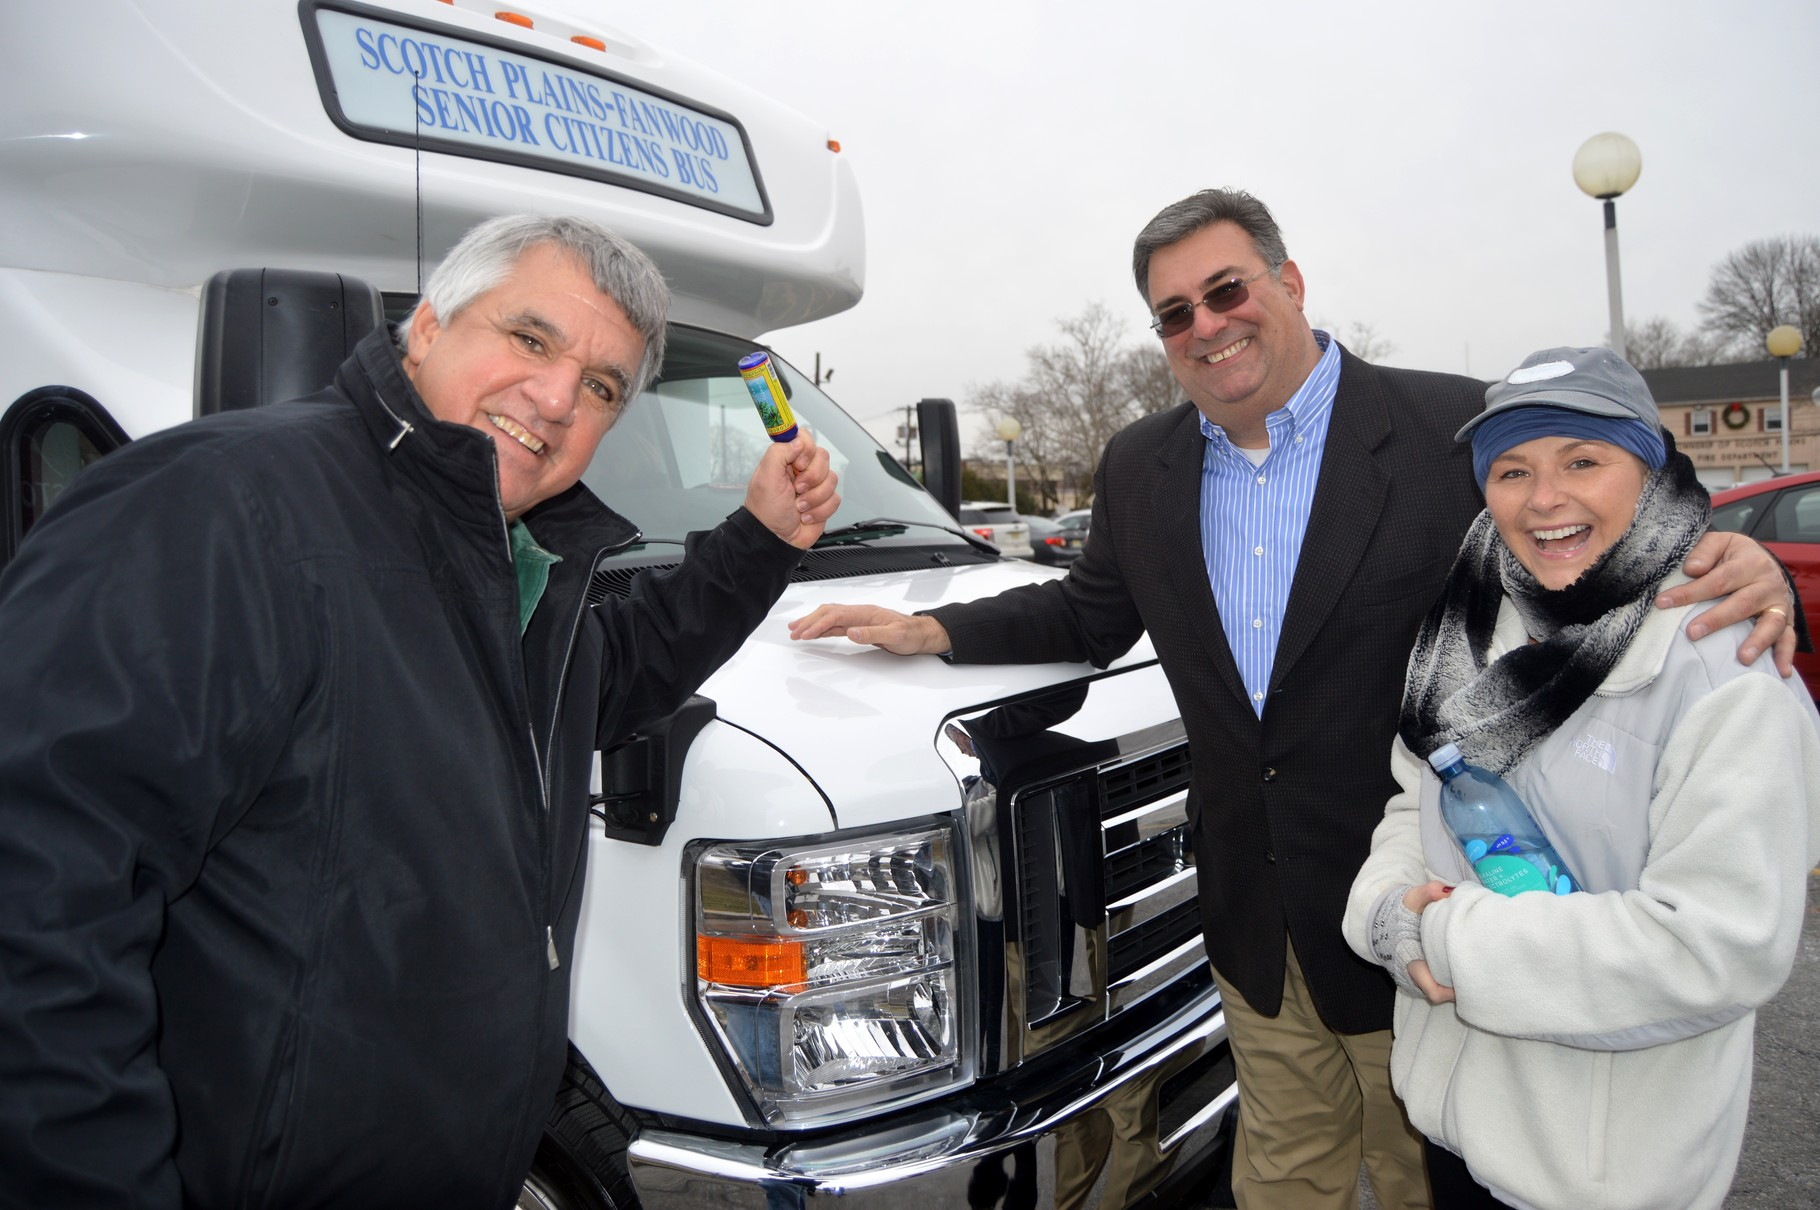 Mayor Glover christens the new bus with Township Manager Al Mirabella and Deputy Mayor Rose Checchio